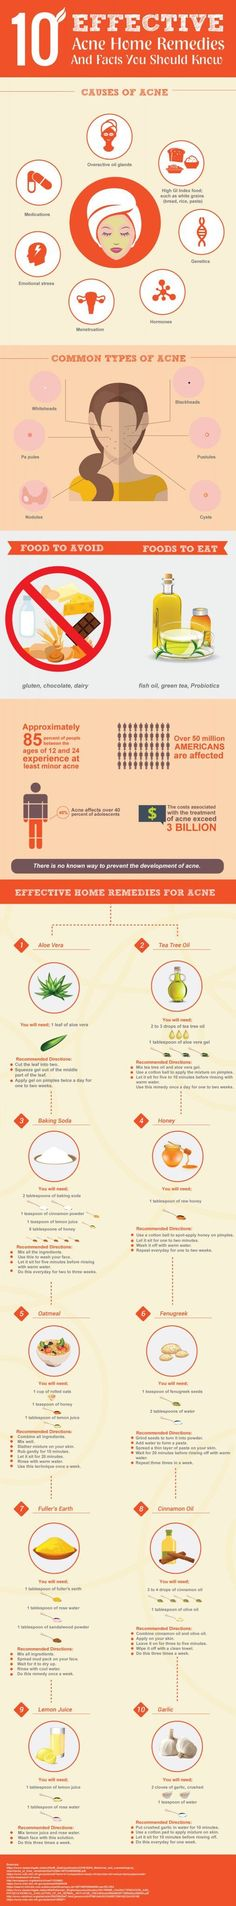 10 Effective Acne Remedies and Facts You Should Know http://www.liveinfographic.com/i/10-effective-acne-remedies-and-facts-you-should-know/ Tags: #infographic  #infographics #popular #pinterest #pinterestinfographics